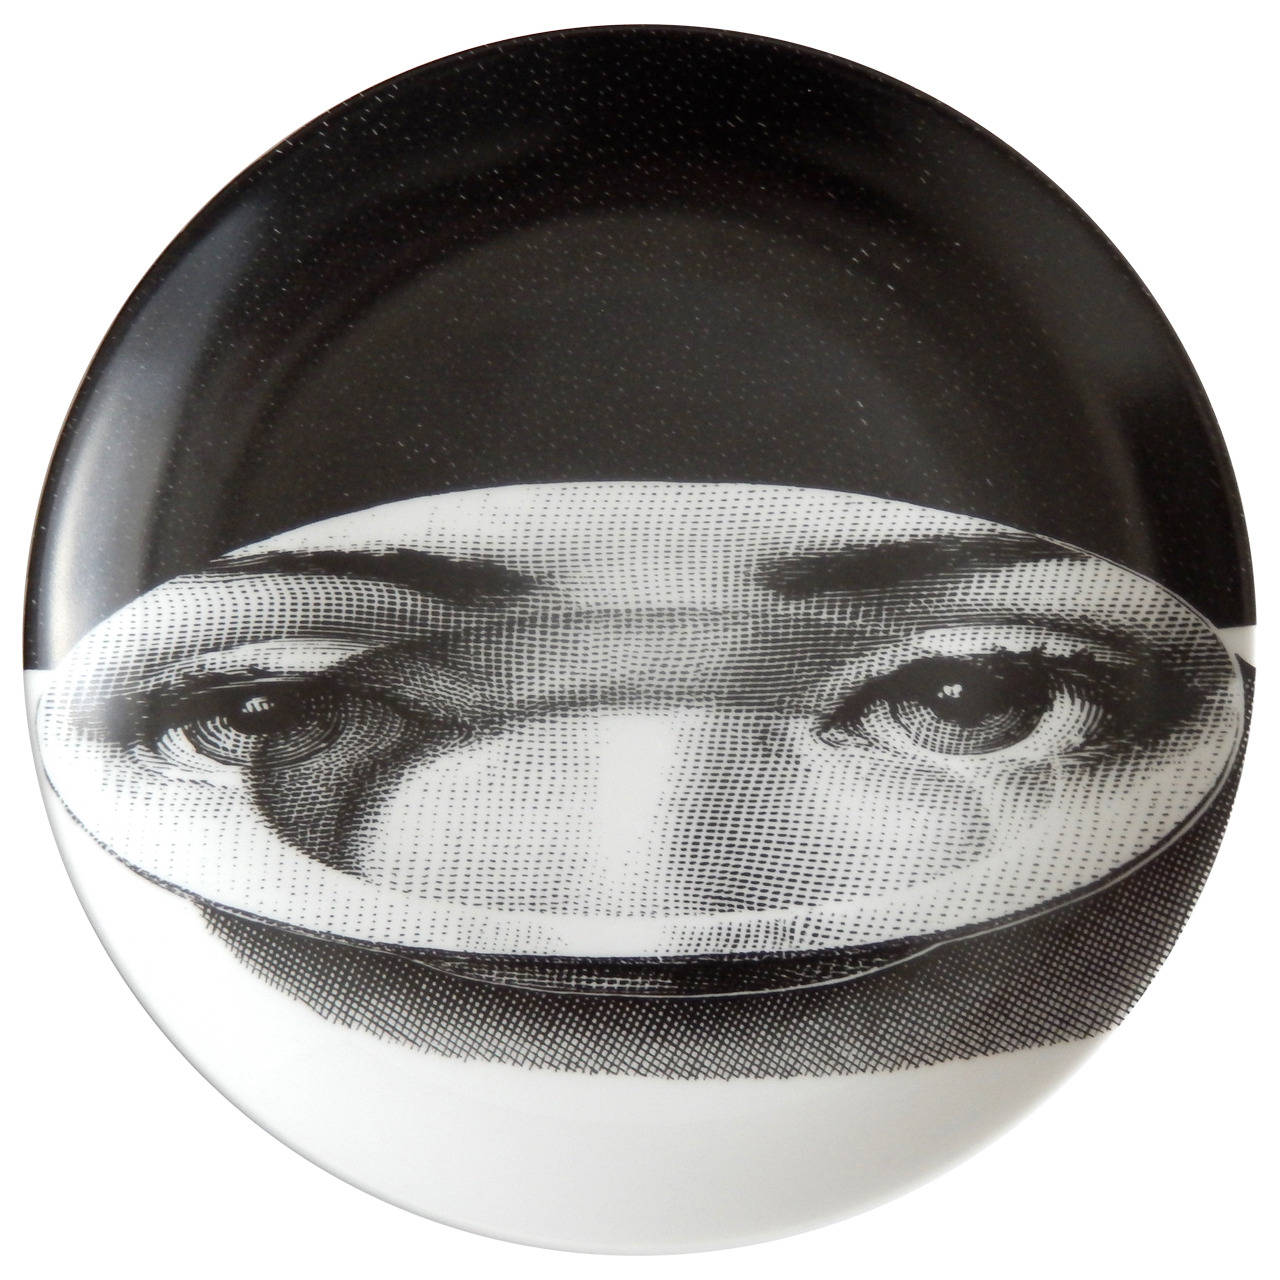 Vintage Plate by Piero Fornasetti, 1960s at 1stdibs